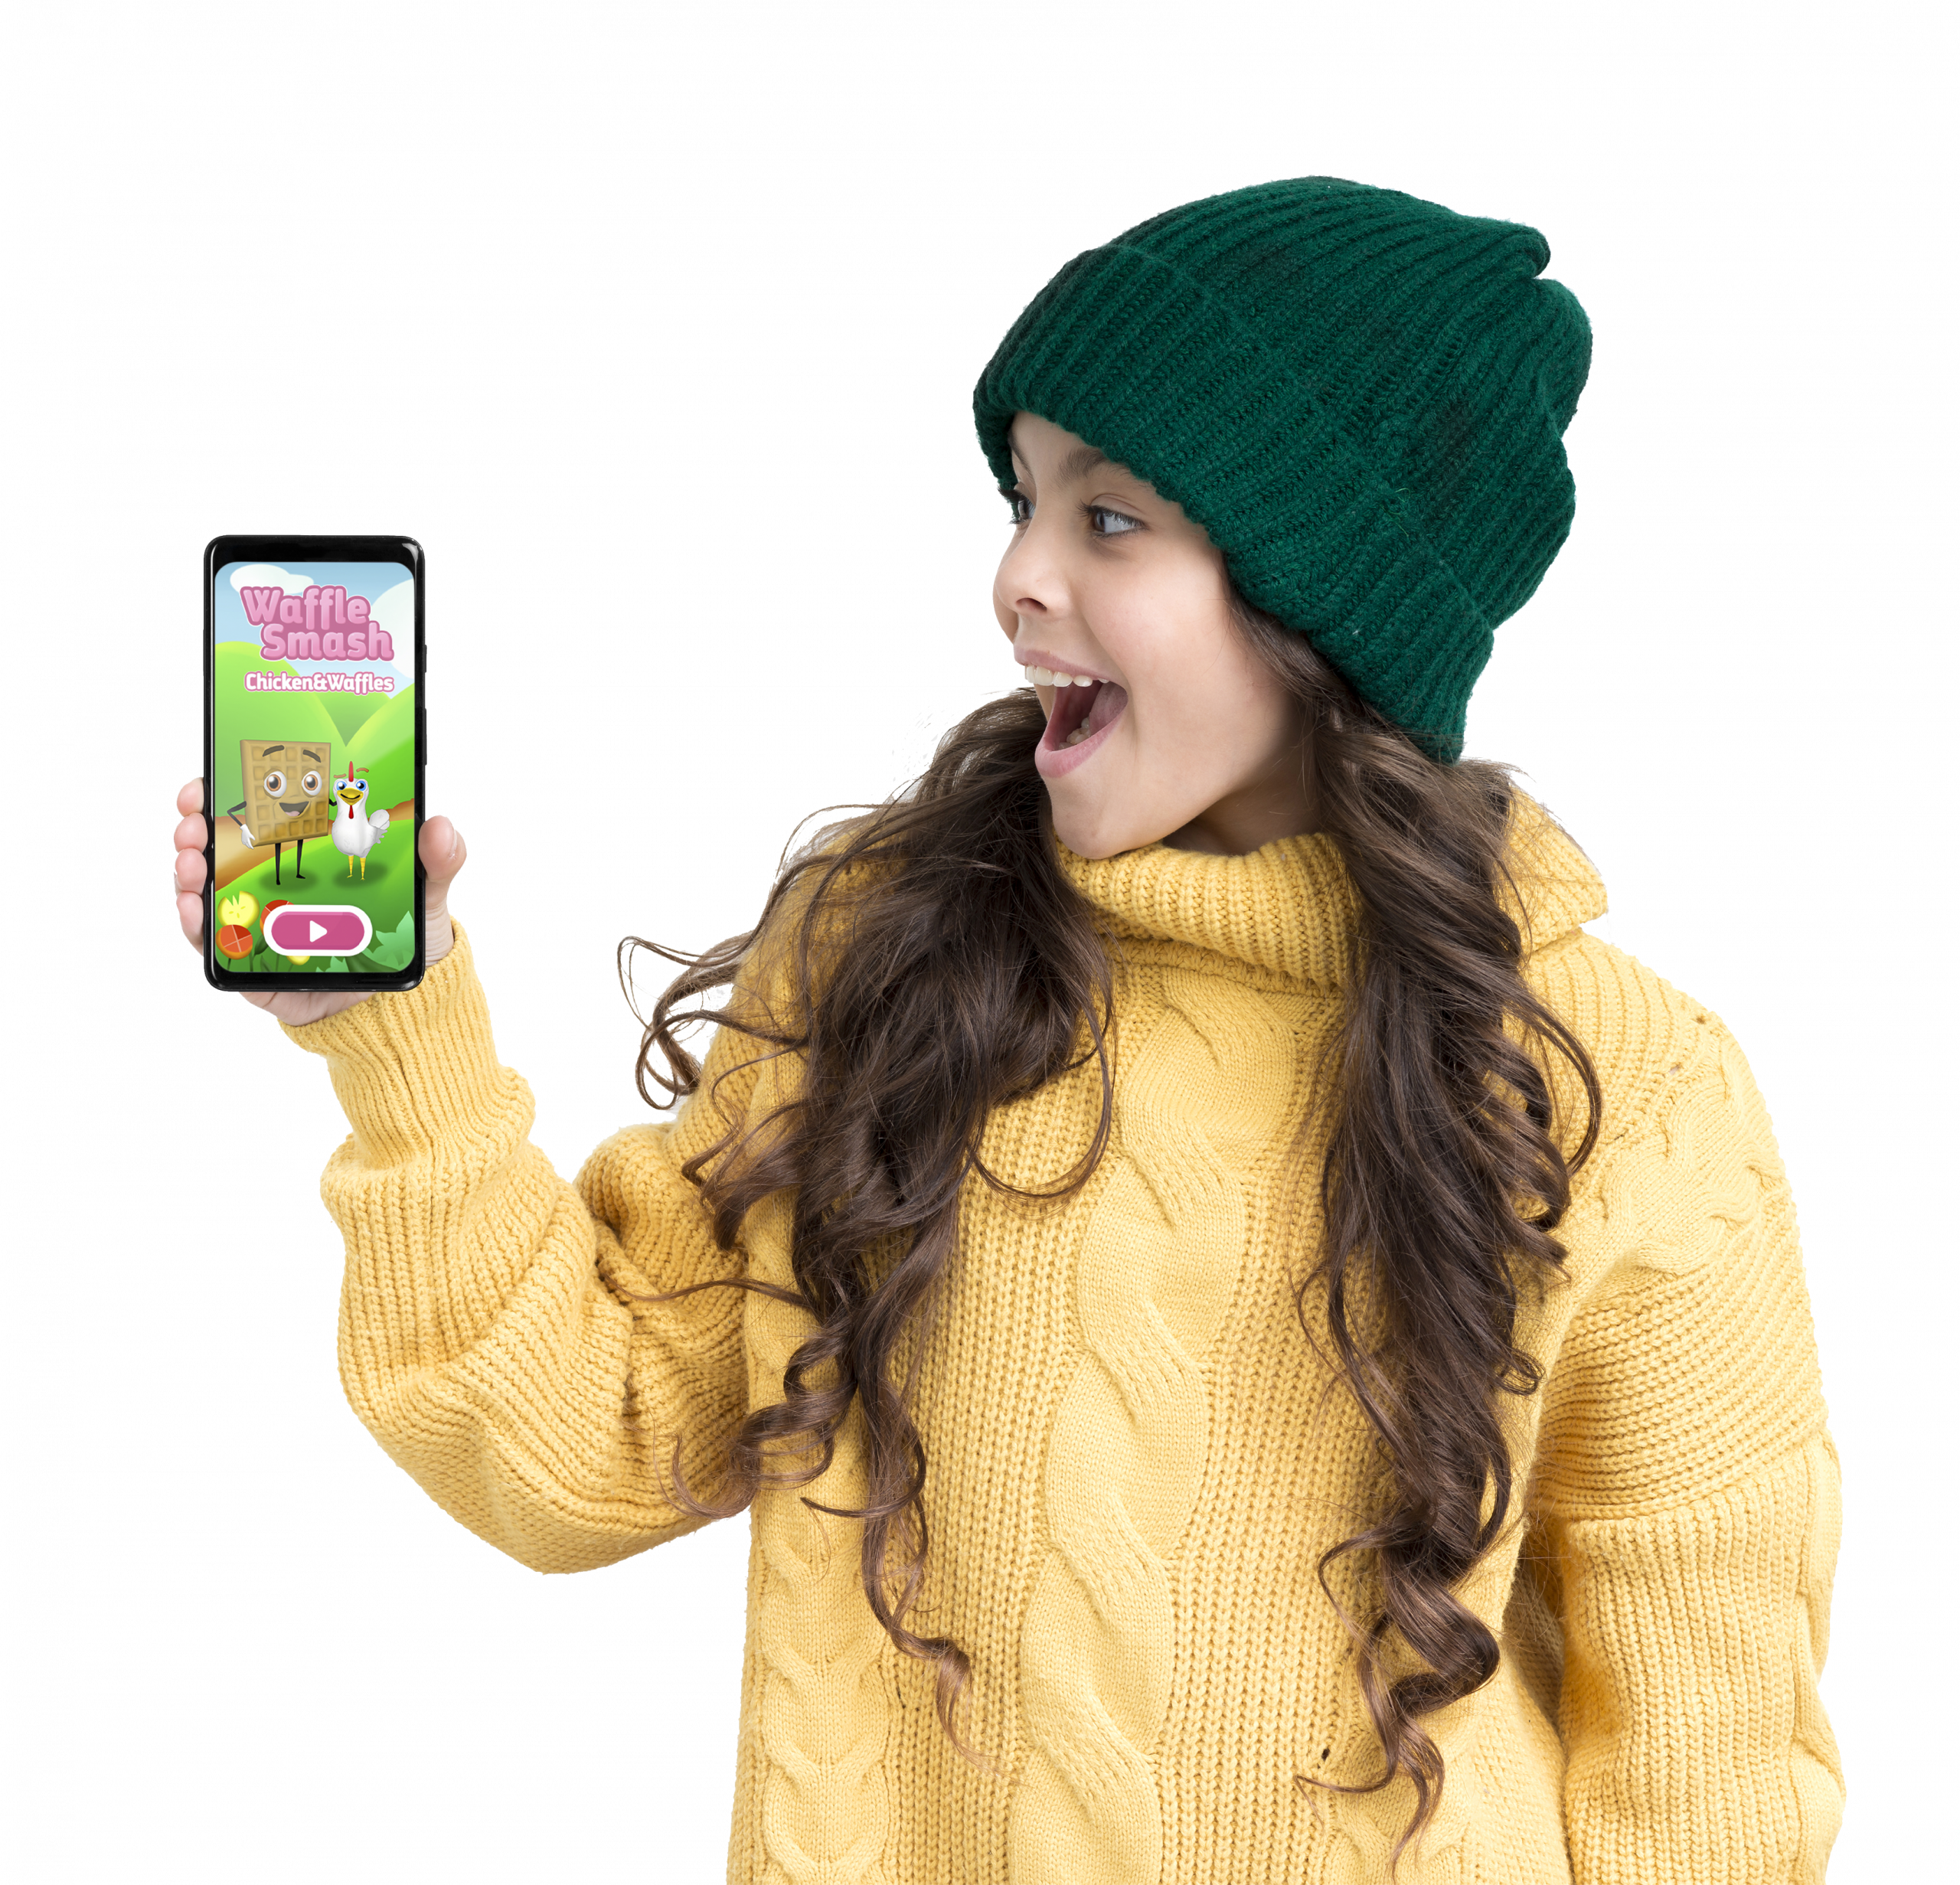 Girl holding a phone with Waffle Smash playing